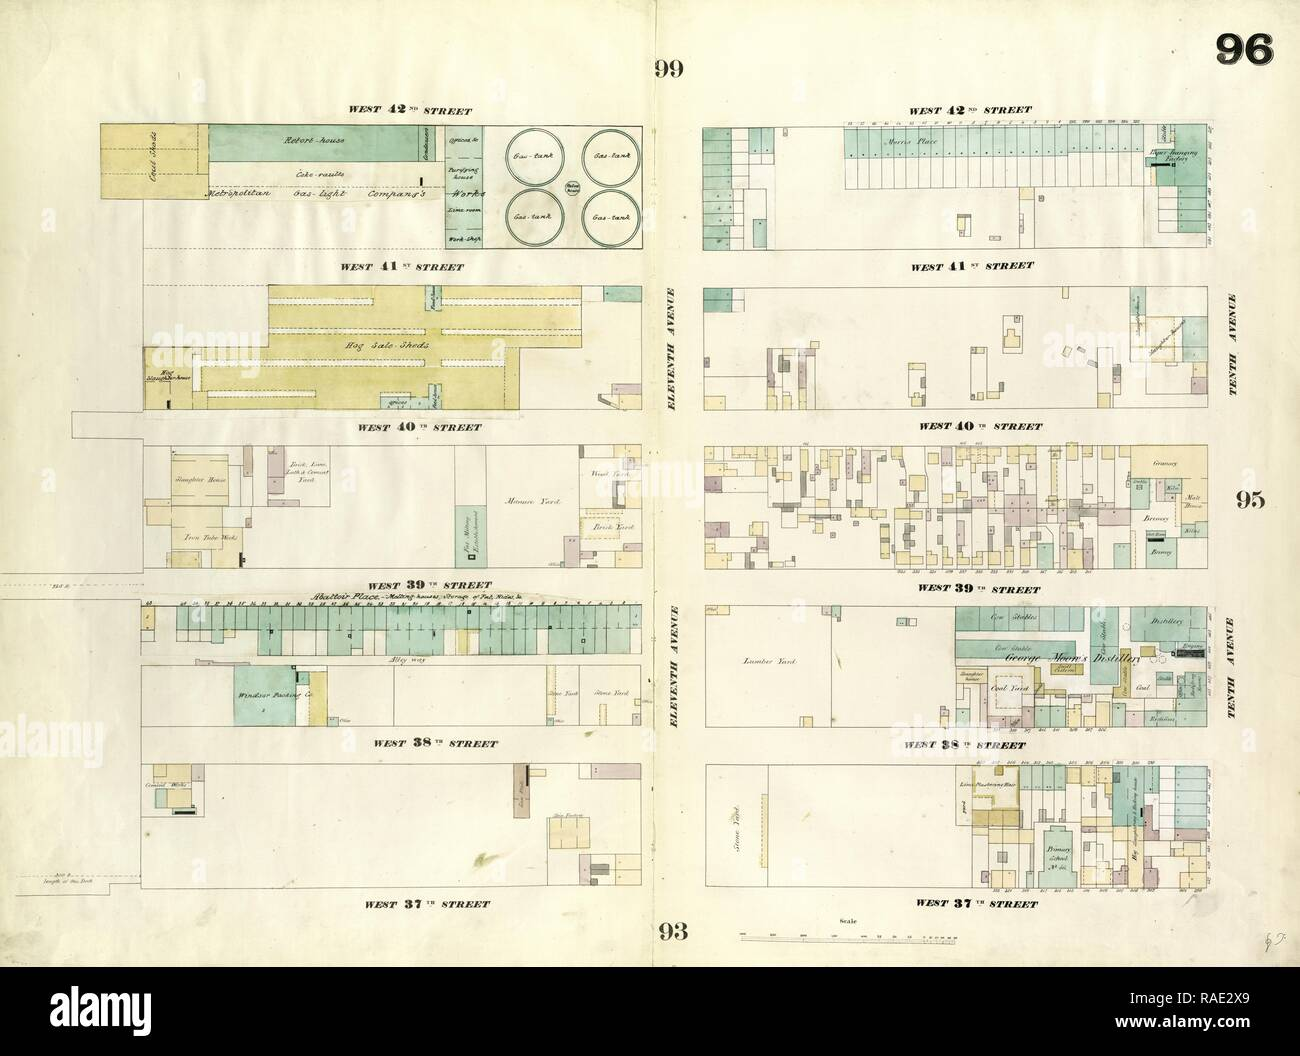 hight resolution of plate 96 map bounded by west 42nd street tenth avenue west 37th street twelfth avenue 1857 1862 perris and reimagined